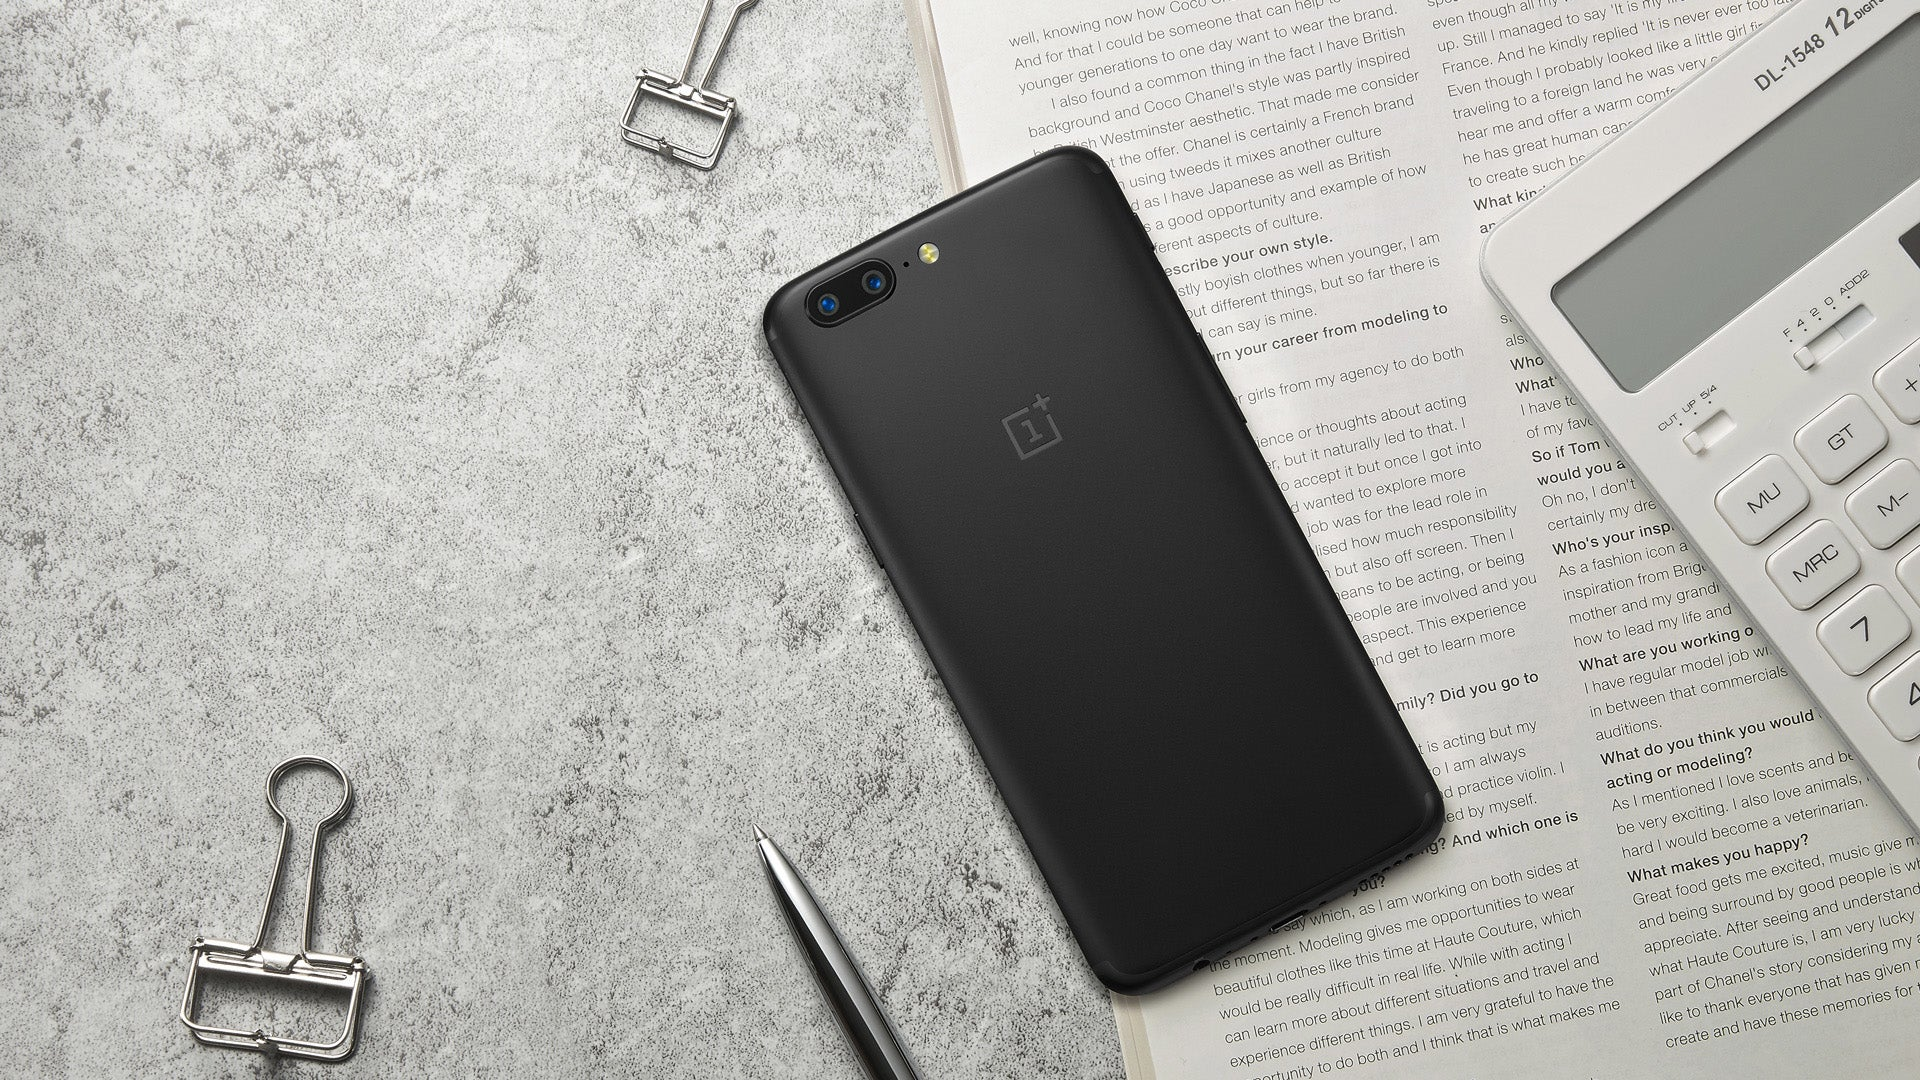 Created At 2017 11 10 0429 Switches Gt Leviton 1451wcp Contractor Toggle Single Pole Switch Wht Feedproxygooglecom Oneplus 5t Wont Feature Wireless Charging Says Ceo